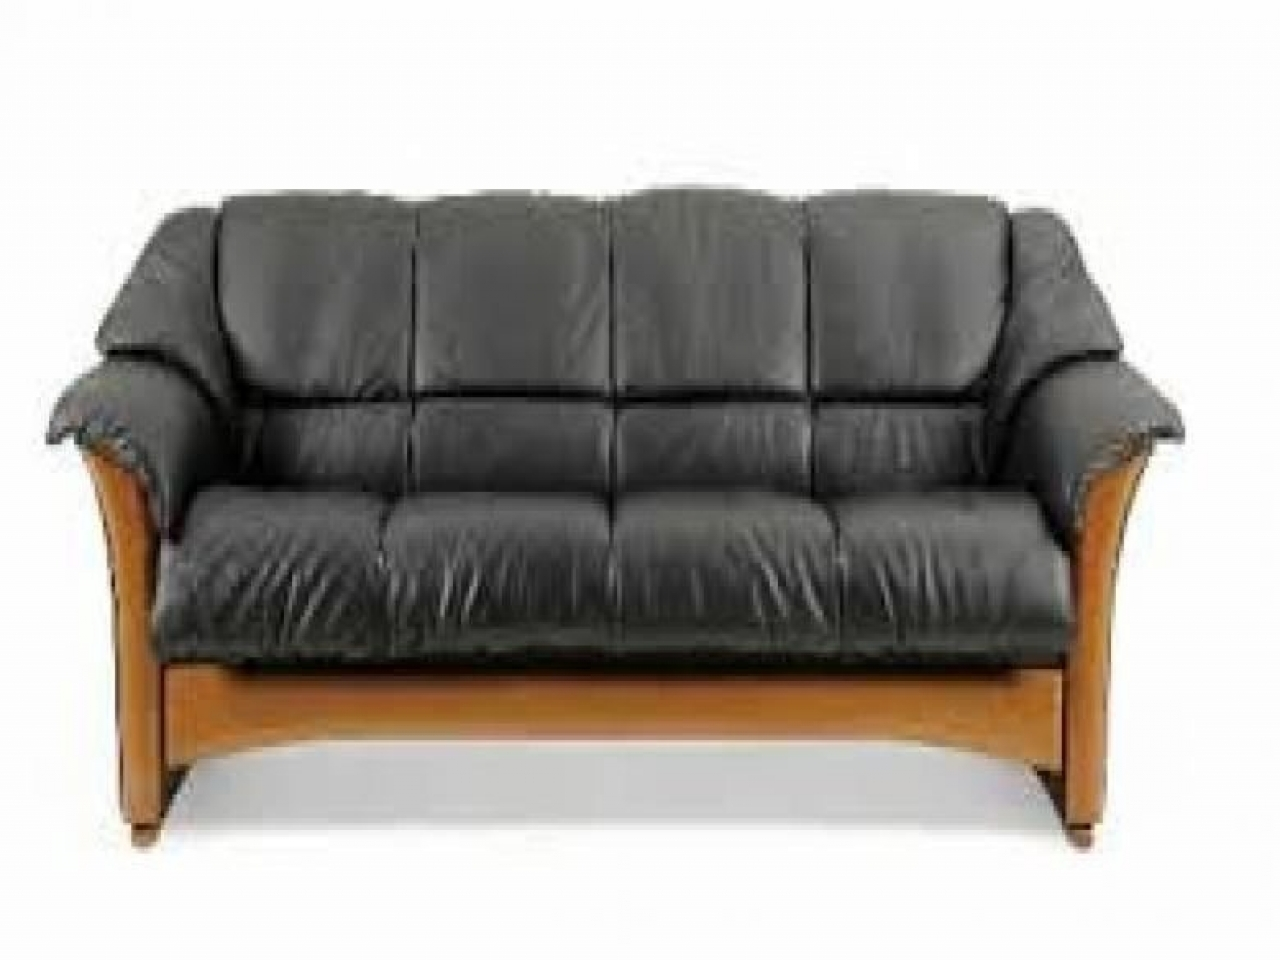 Closeout Sectional Sofas 12 Best Ideas Of Closeout Sectional Sofas - TheSofa